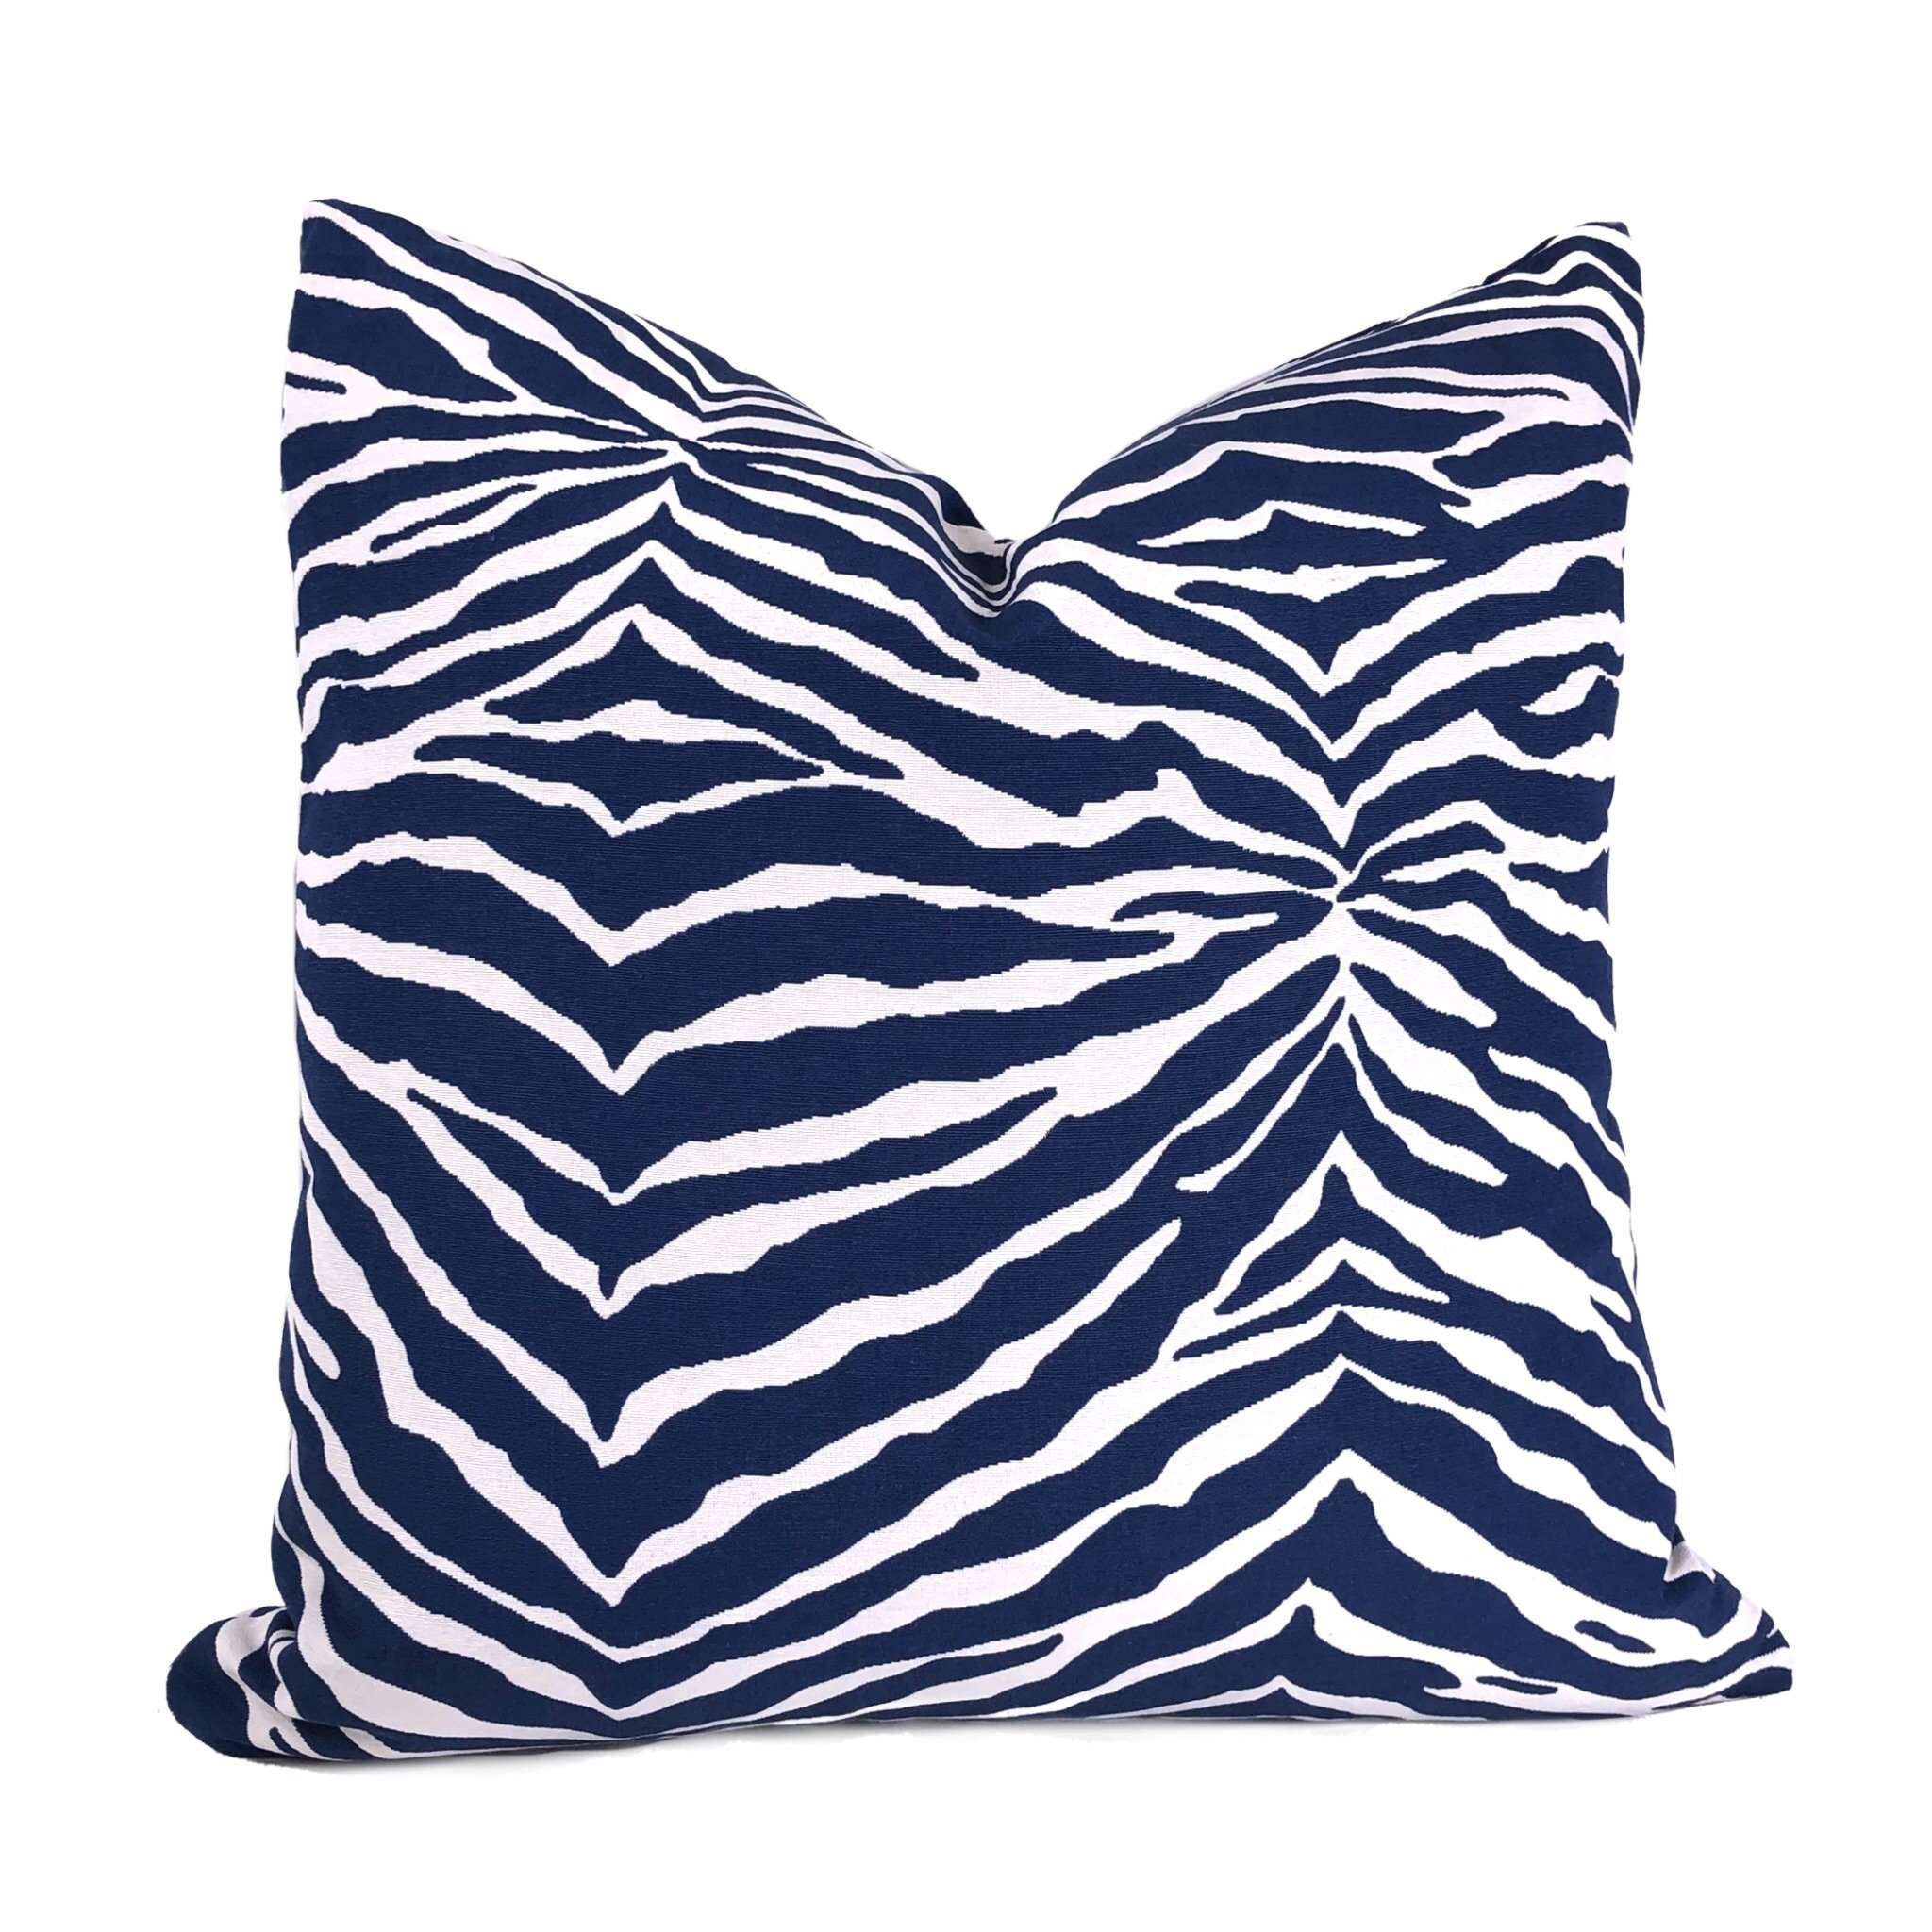 Navy Blue & White Zebra Stripe Pillow Cover Cushion Pillow Case Euro Sham 16x16 18x18 20x20 22x22 24x24 26x26 28x28 Lumbar Pillow 12x18 12x20 12x24 14x20 16x26 by Aloriam